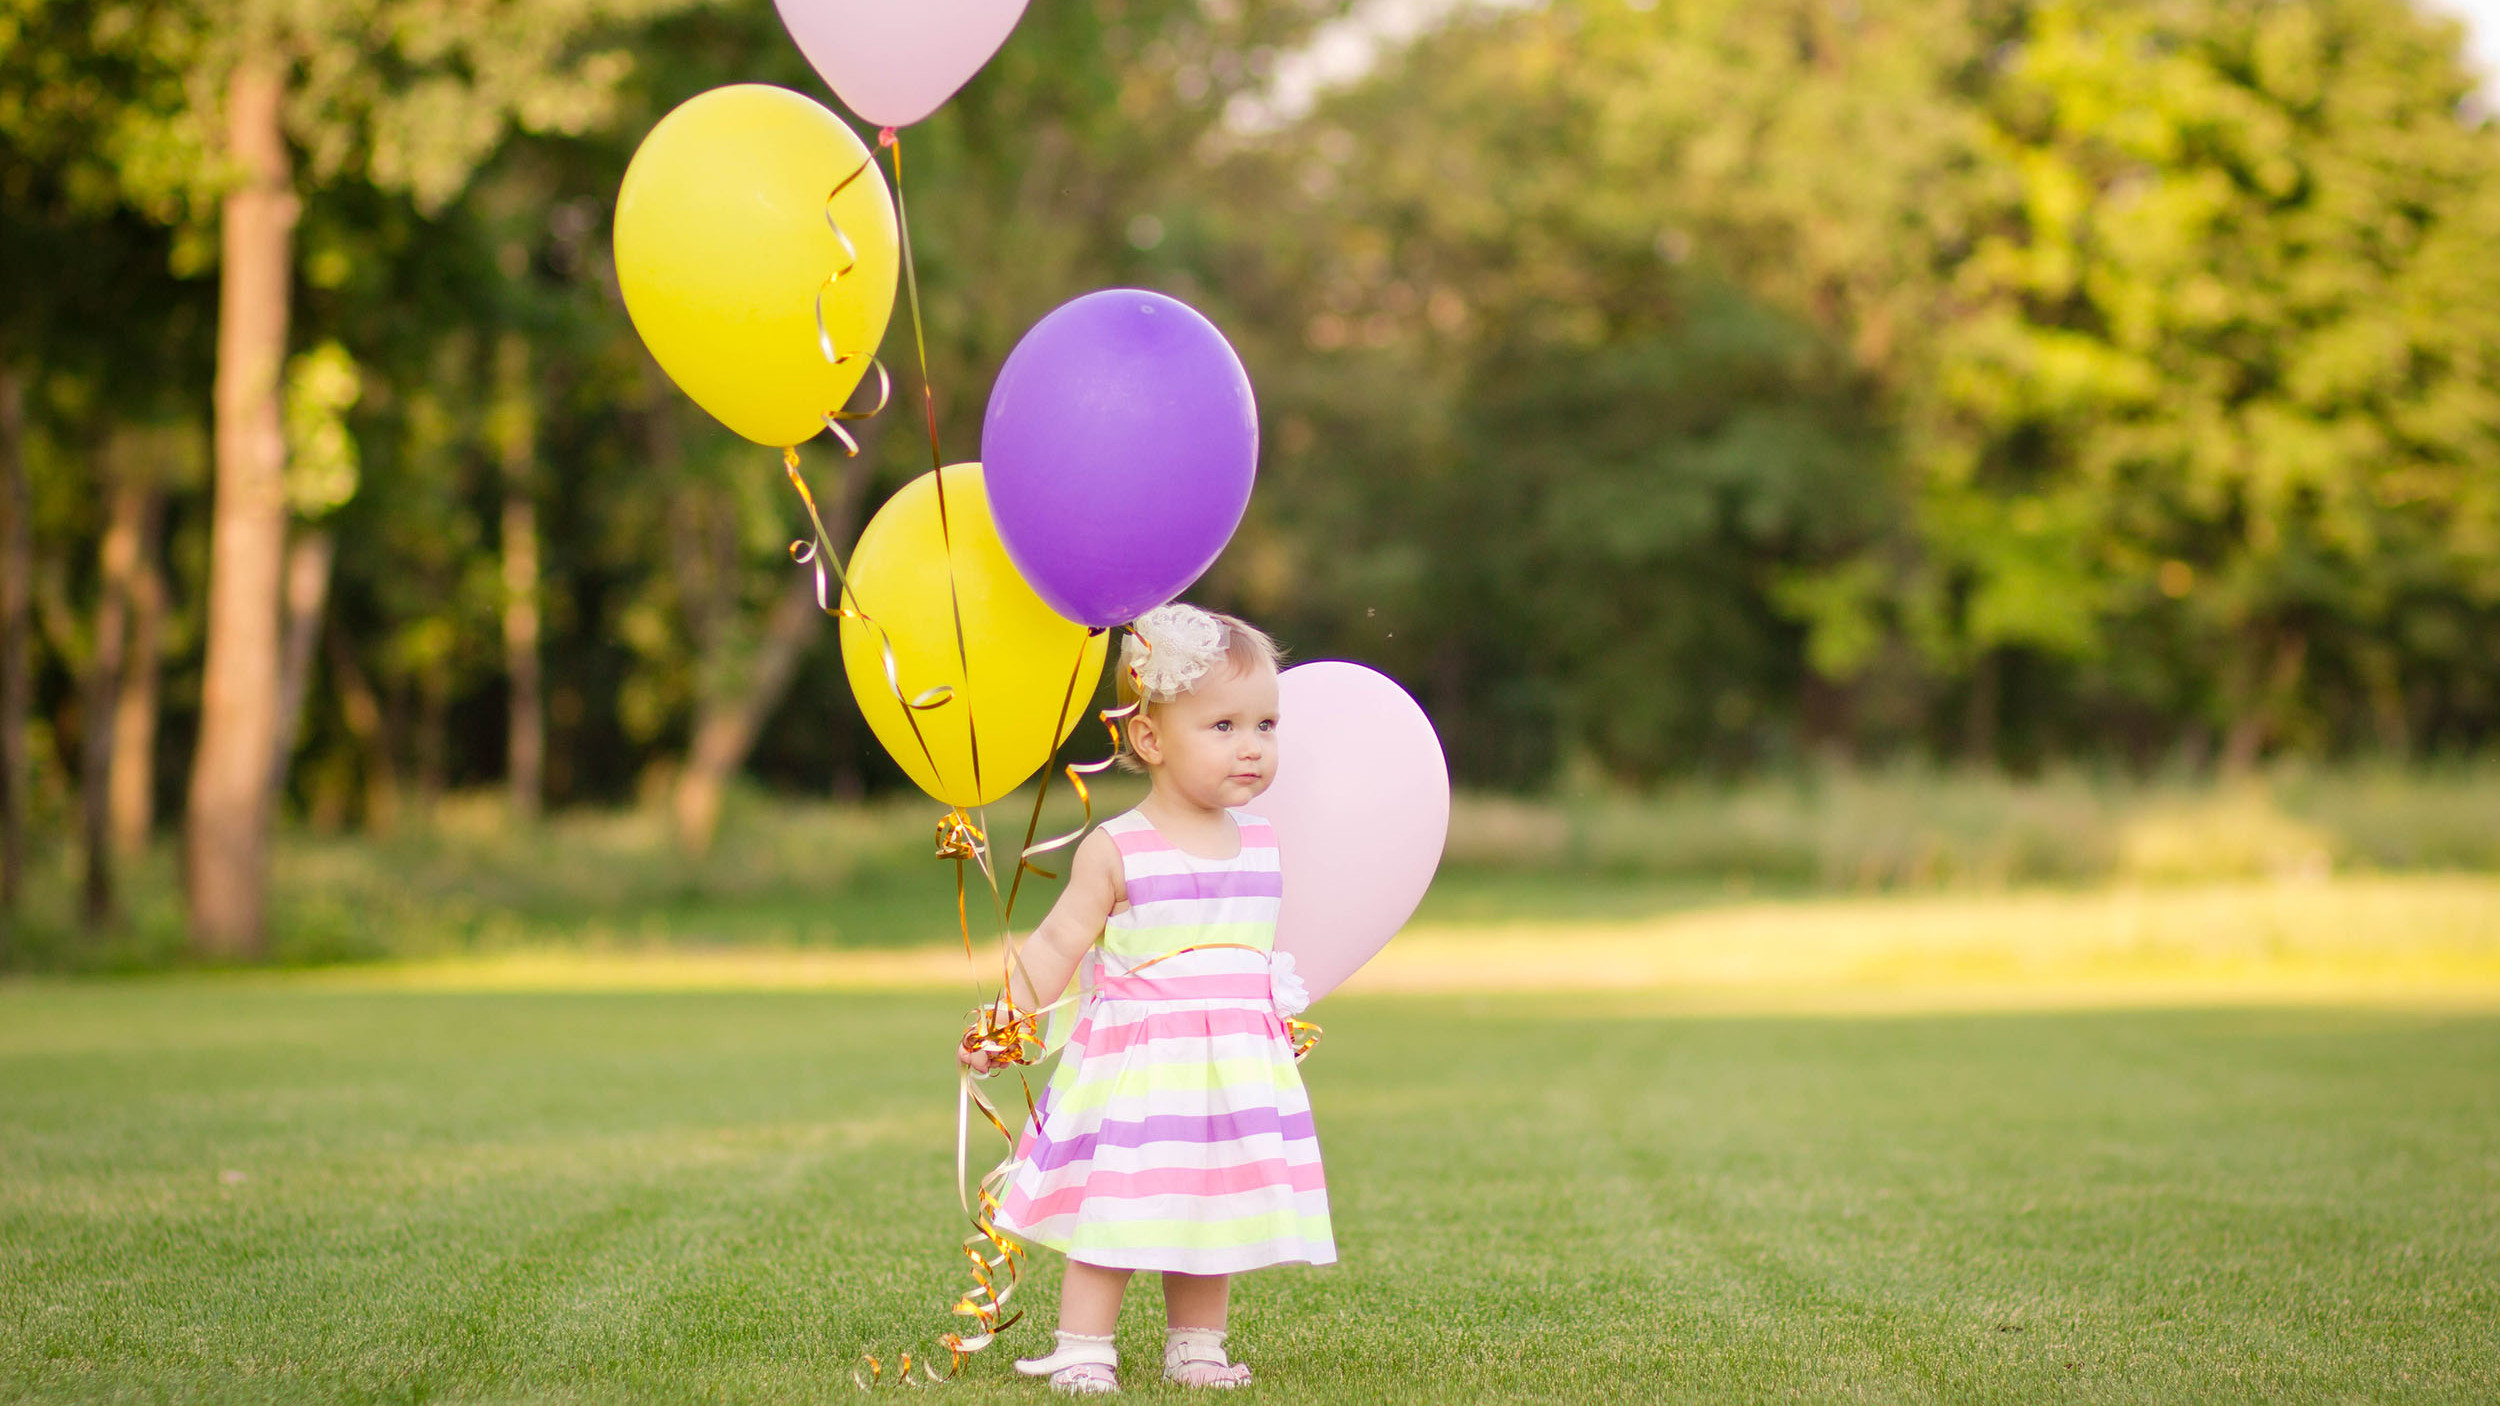 Afternoon tea and birthday parties in Henley-on-Thames at Badgemore Park